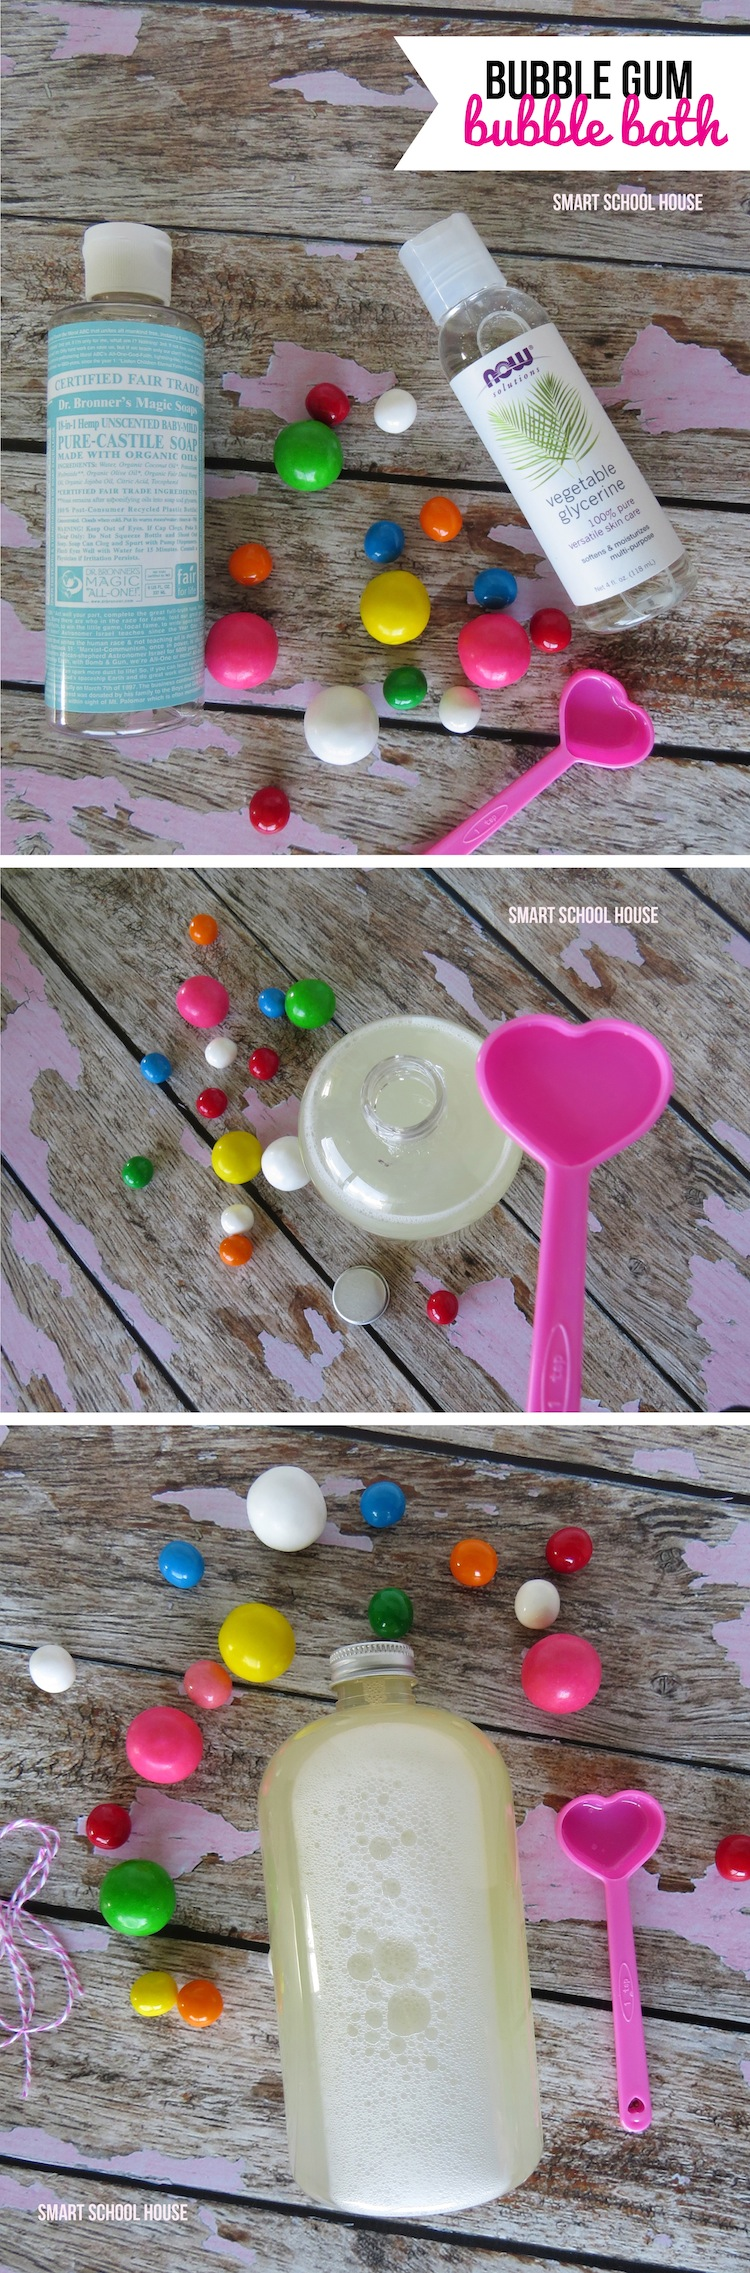 An incredibly simple and cute tutorial for Bubble Gum Scented Bubble Bath!